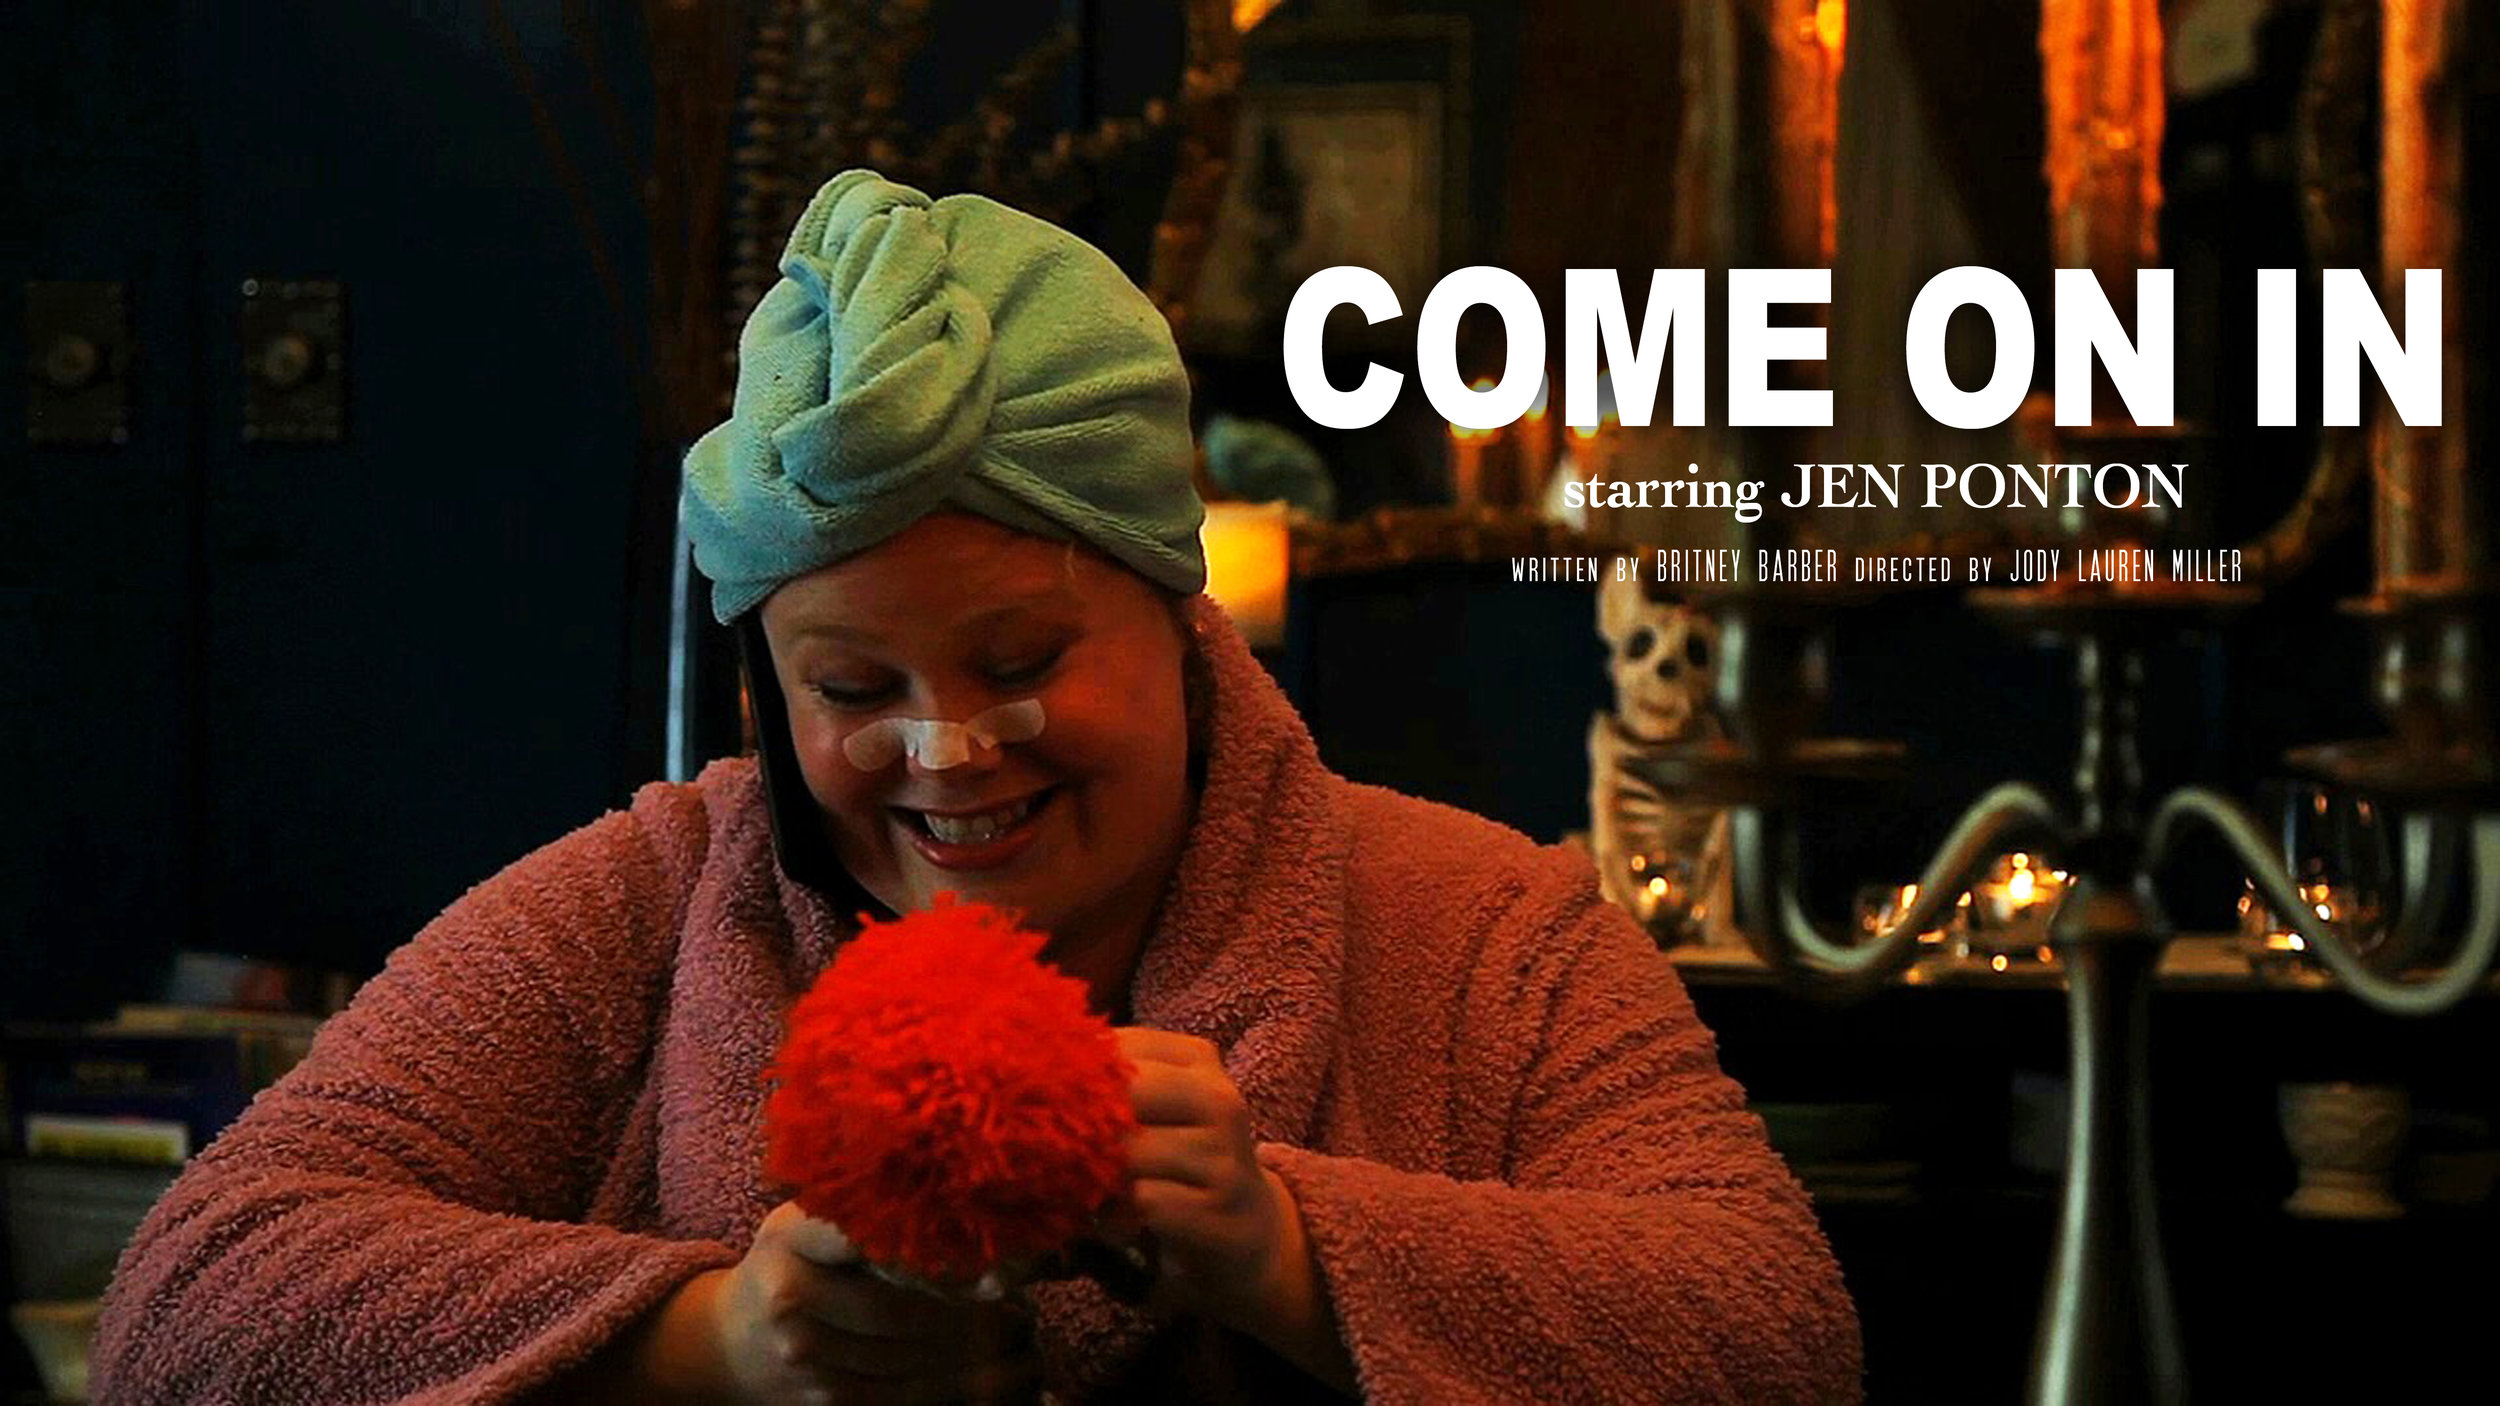 Come On In Starring Jen Ponton